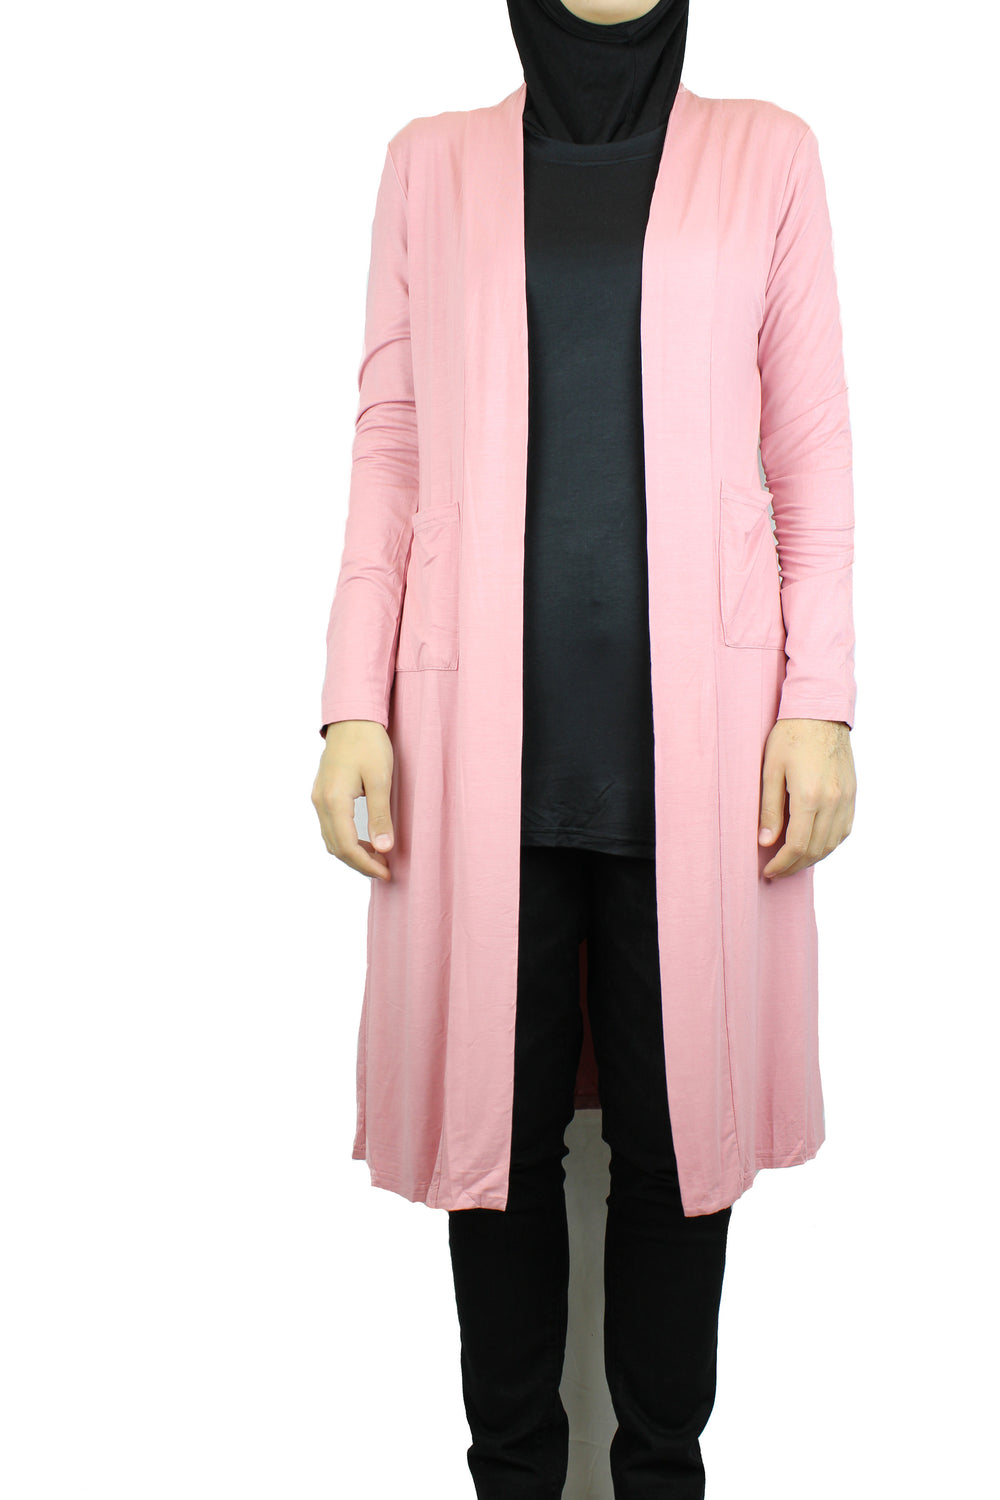 Maxi Open Front Cardigan with Pockets - Cherry Blossom Pink